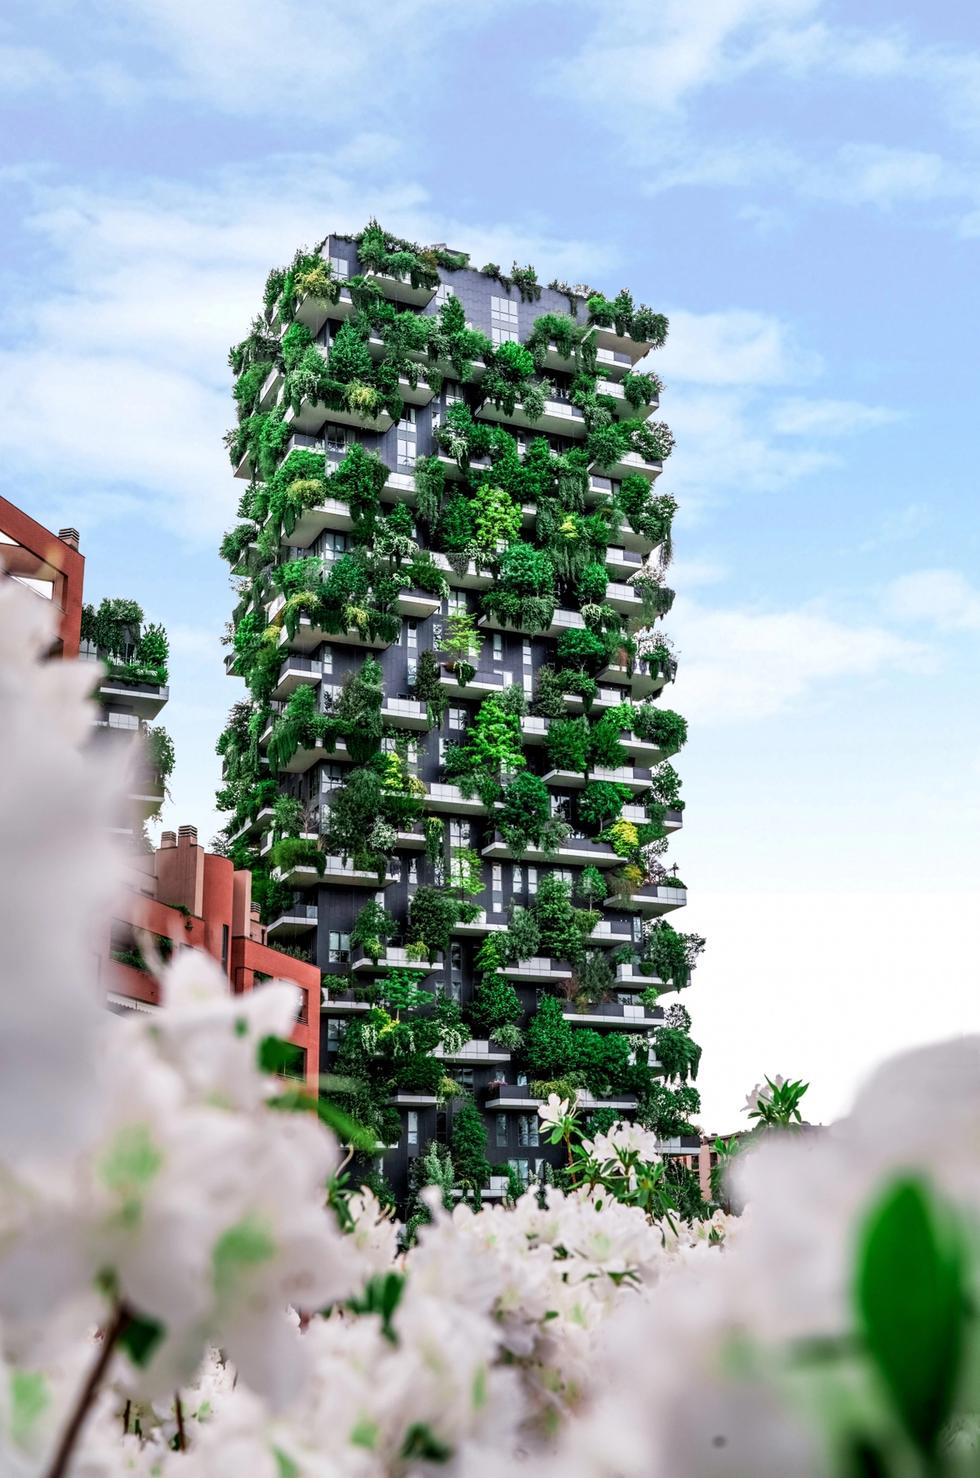 Green plants on building sustainability